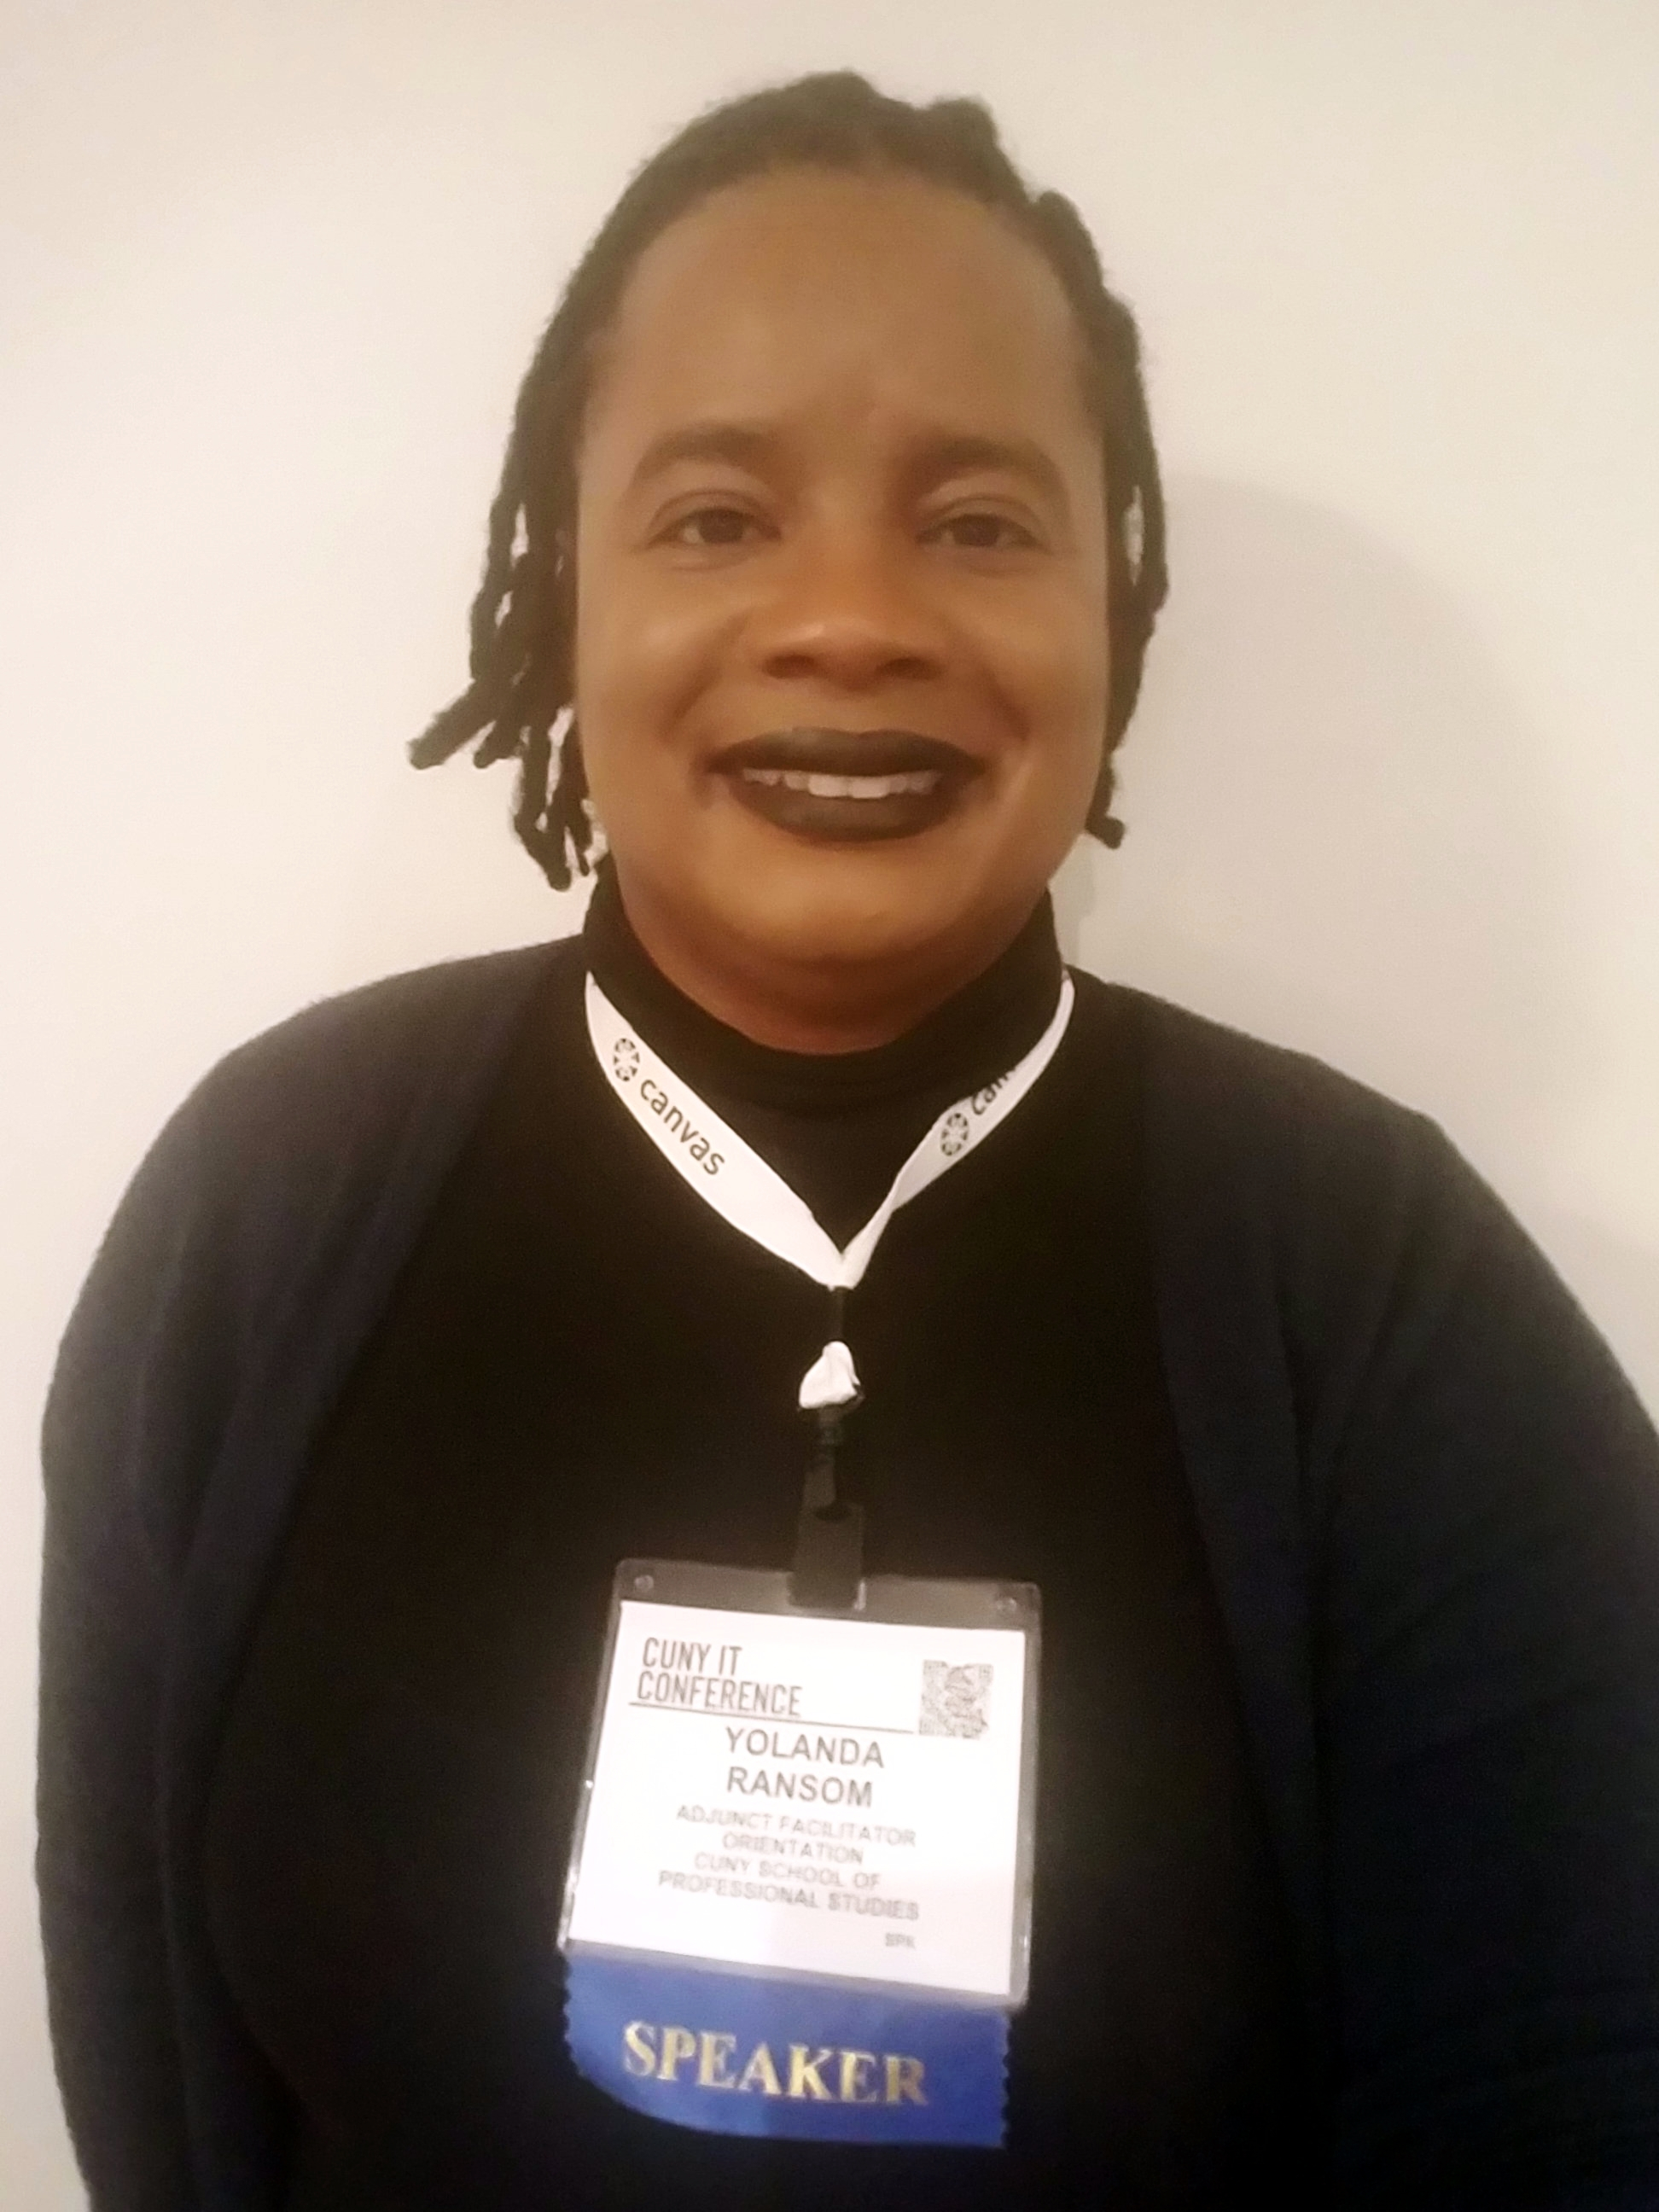 Presenting at the 17th Annual CUNY IT Conference in 2018 as a panel speakerfor CUNY School of Professional Studies